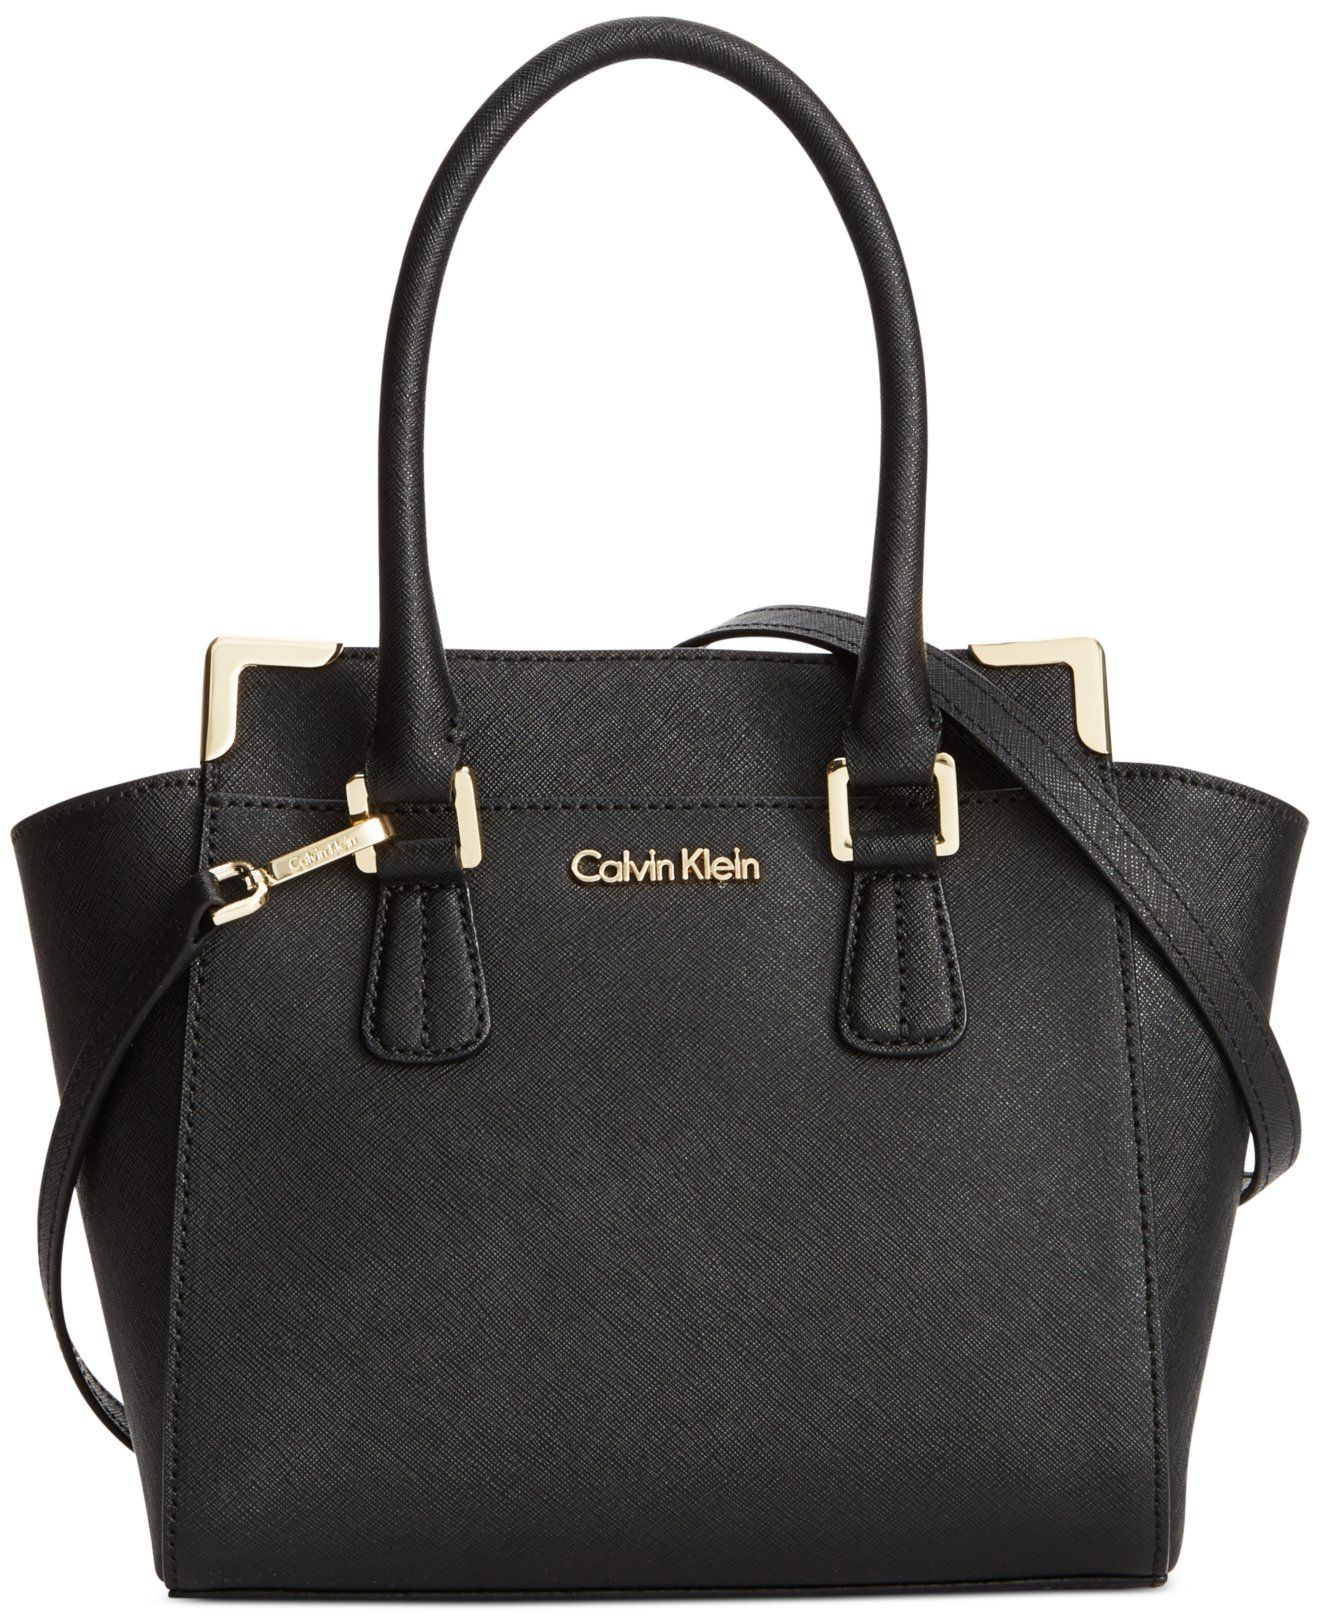 3915de72a5 Calvin Klein On My Corner Saffiano Crossbody - Handbags & Accessories -  Macy's